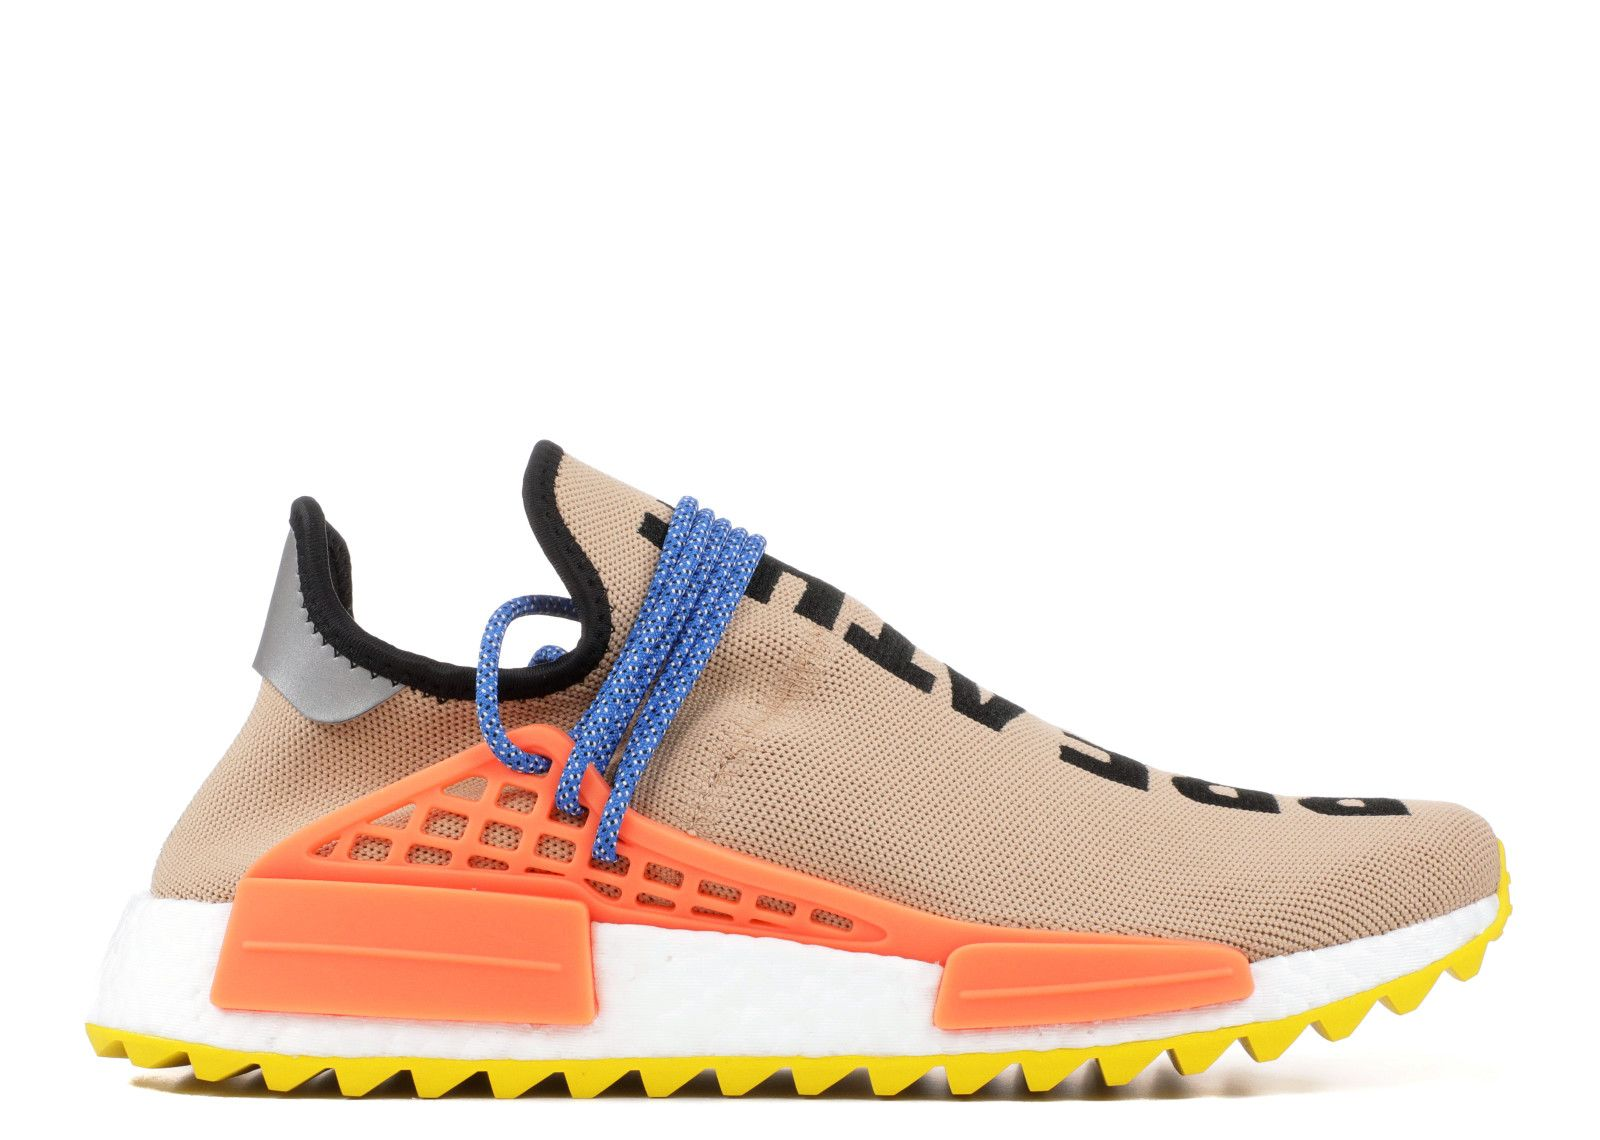 de6cb3b6fbd2a 2017-2018 New Arrival adidas PW Human Race Nmd TR Pharrell Pale Nude Black  Yellow